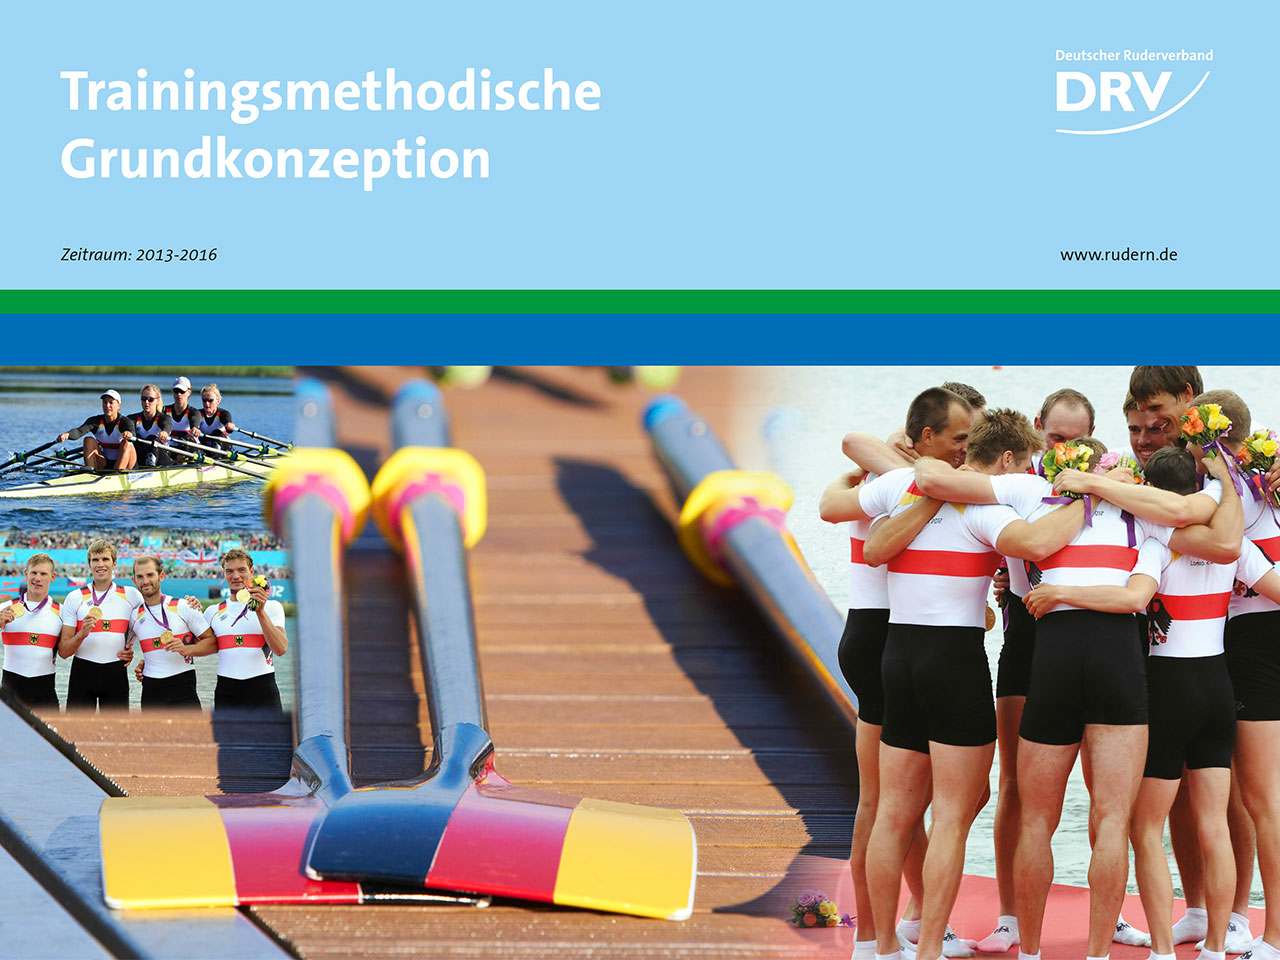 Trainingsmethodische Grundkonzeption 2013-2016